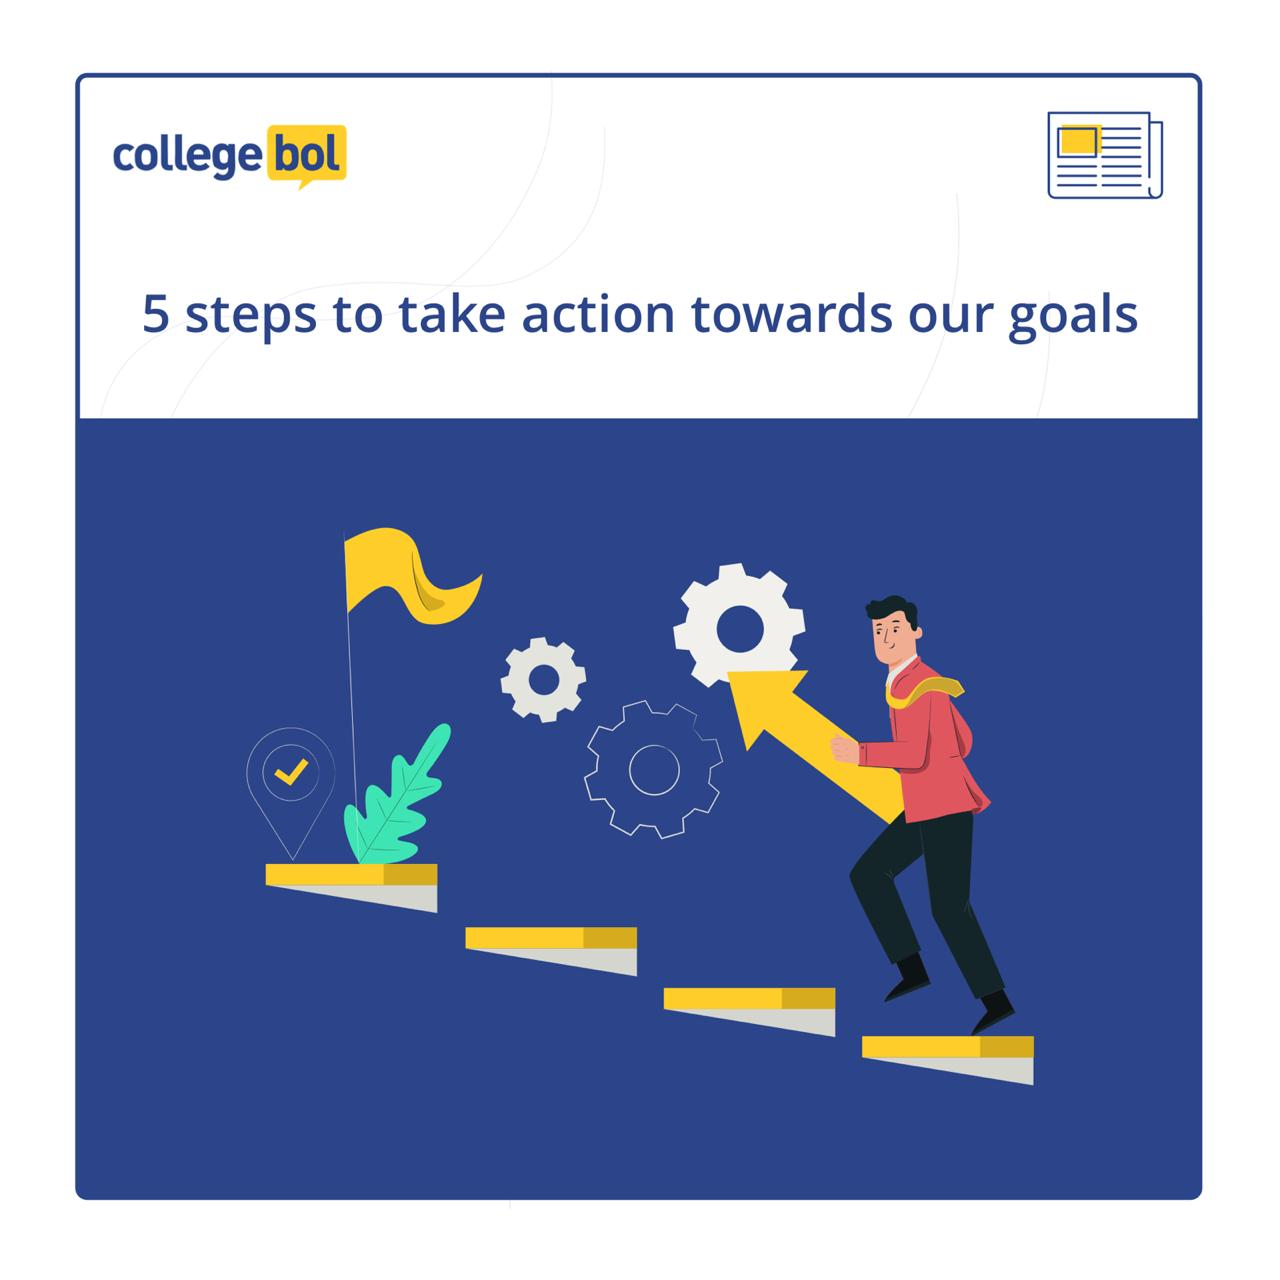 5 steps to take action towards our goals